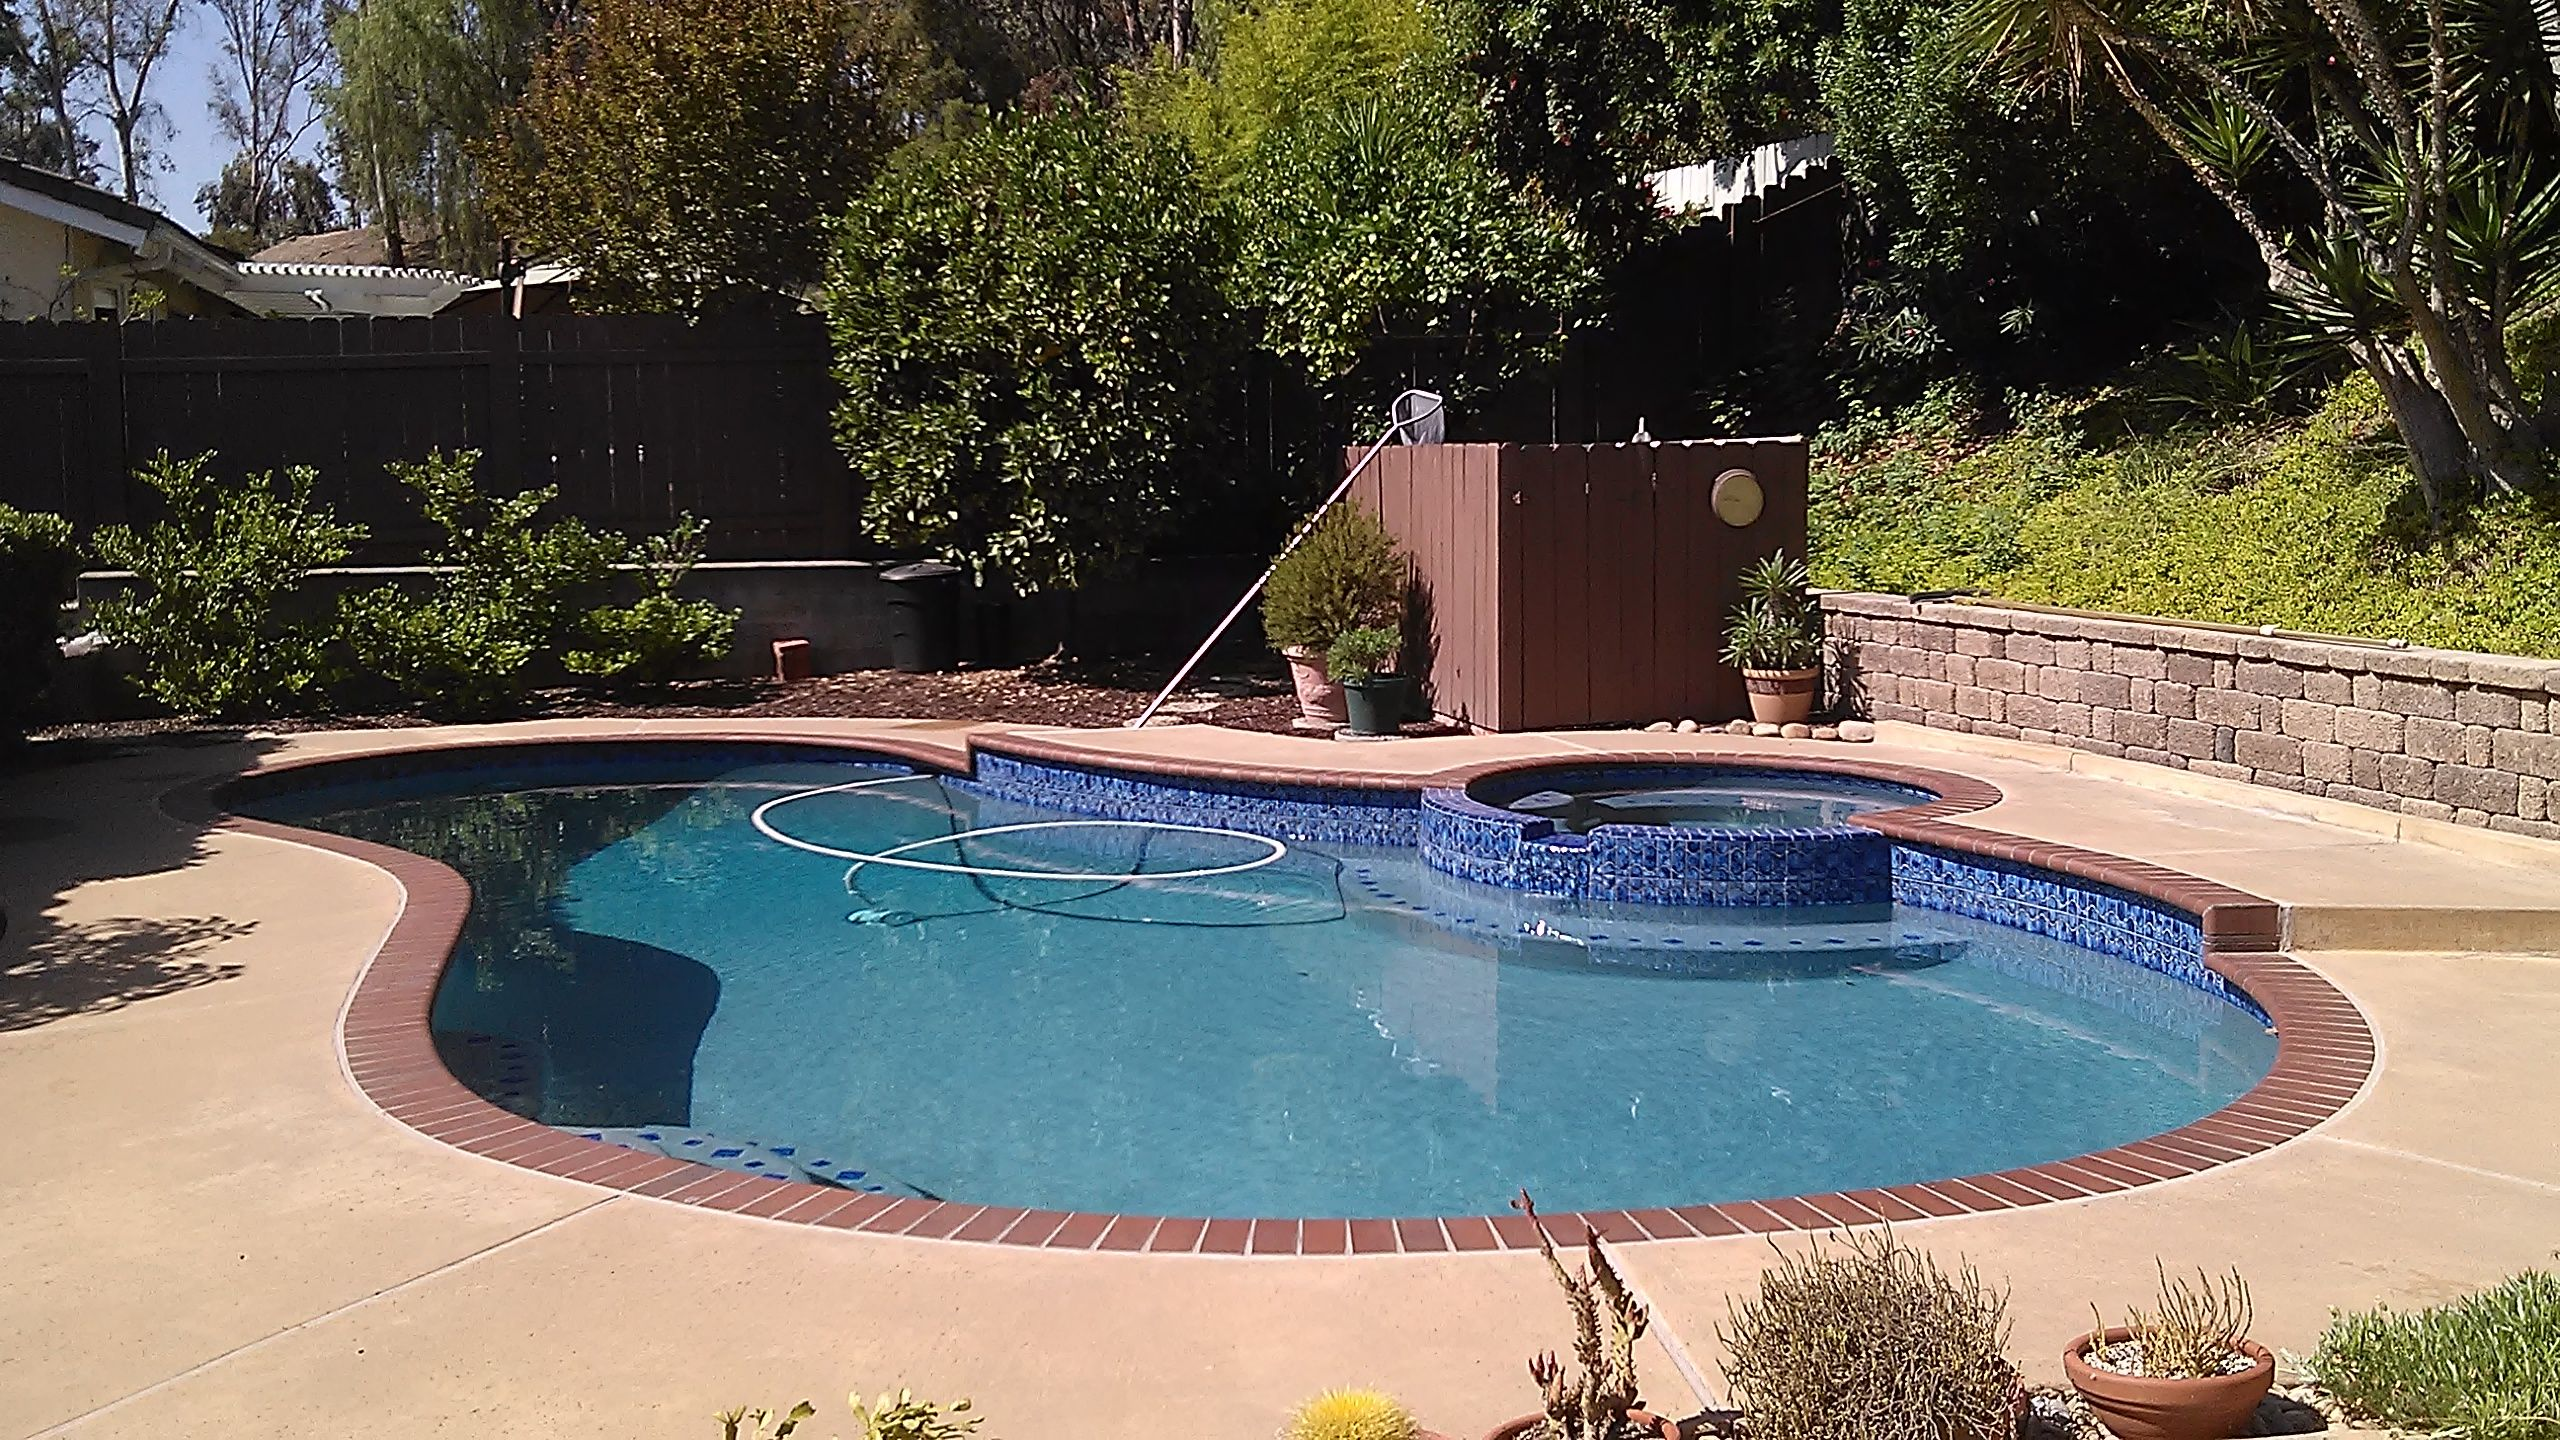 18 000 Gallons Of Recycled Swimming Pool Water Pools We 39 Ve Recycled Pinterest